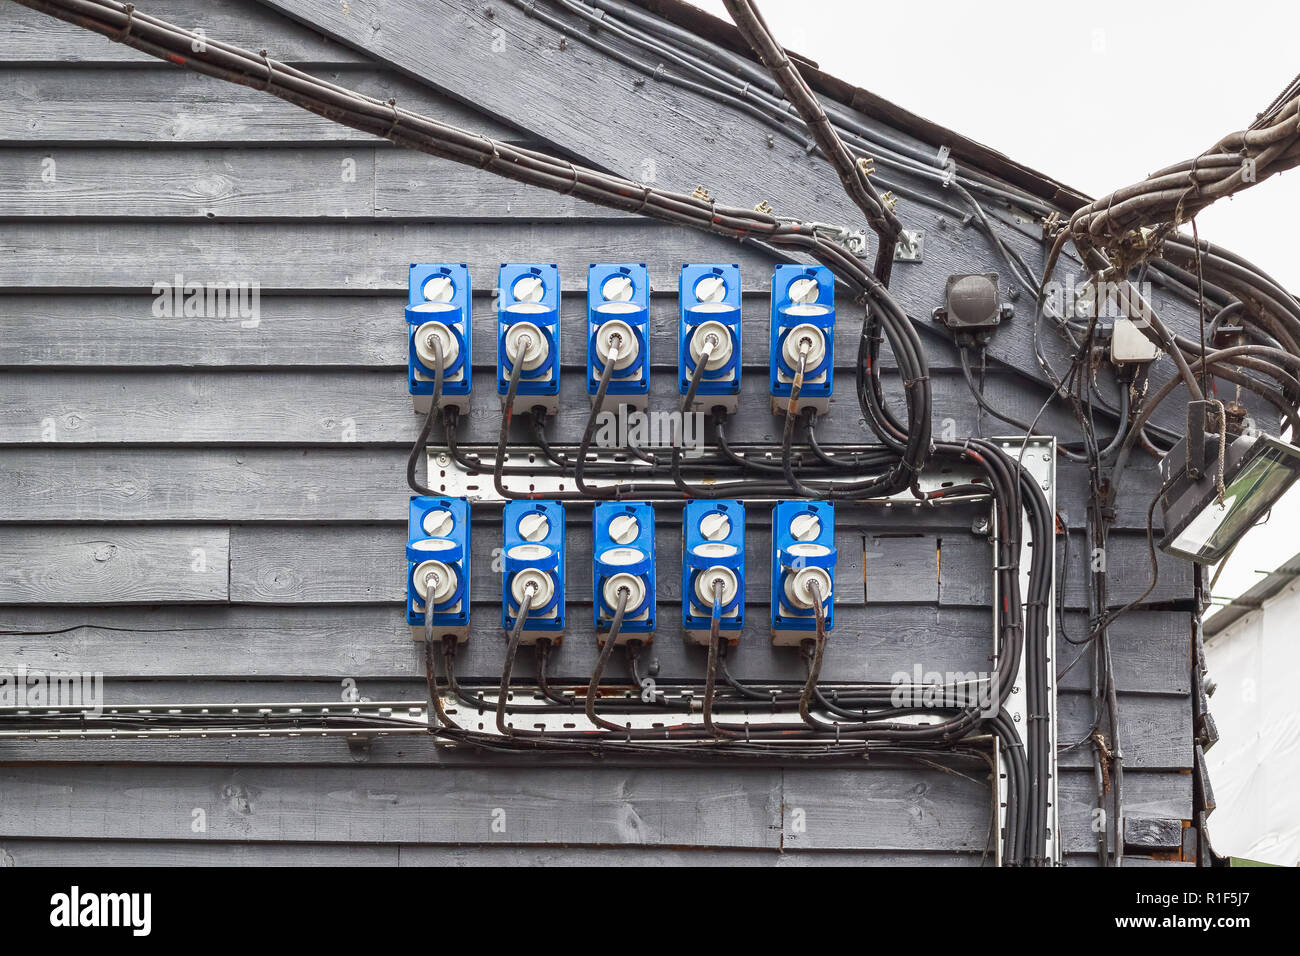 Power Socket Dangerous Uk Stock Photos Wiring An Electrical Outdoor Sockets With Plugs In At Camden Market London Image